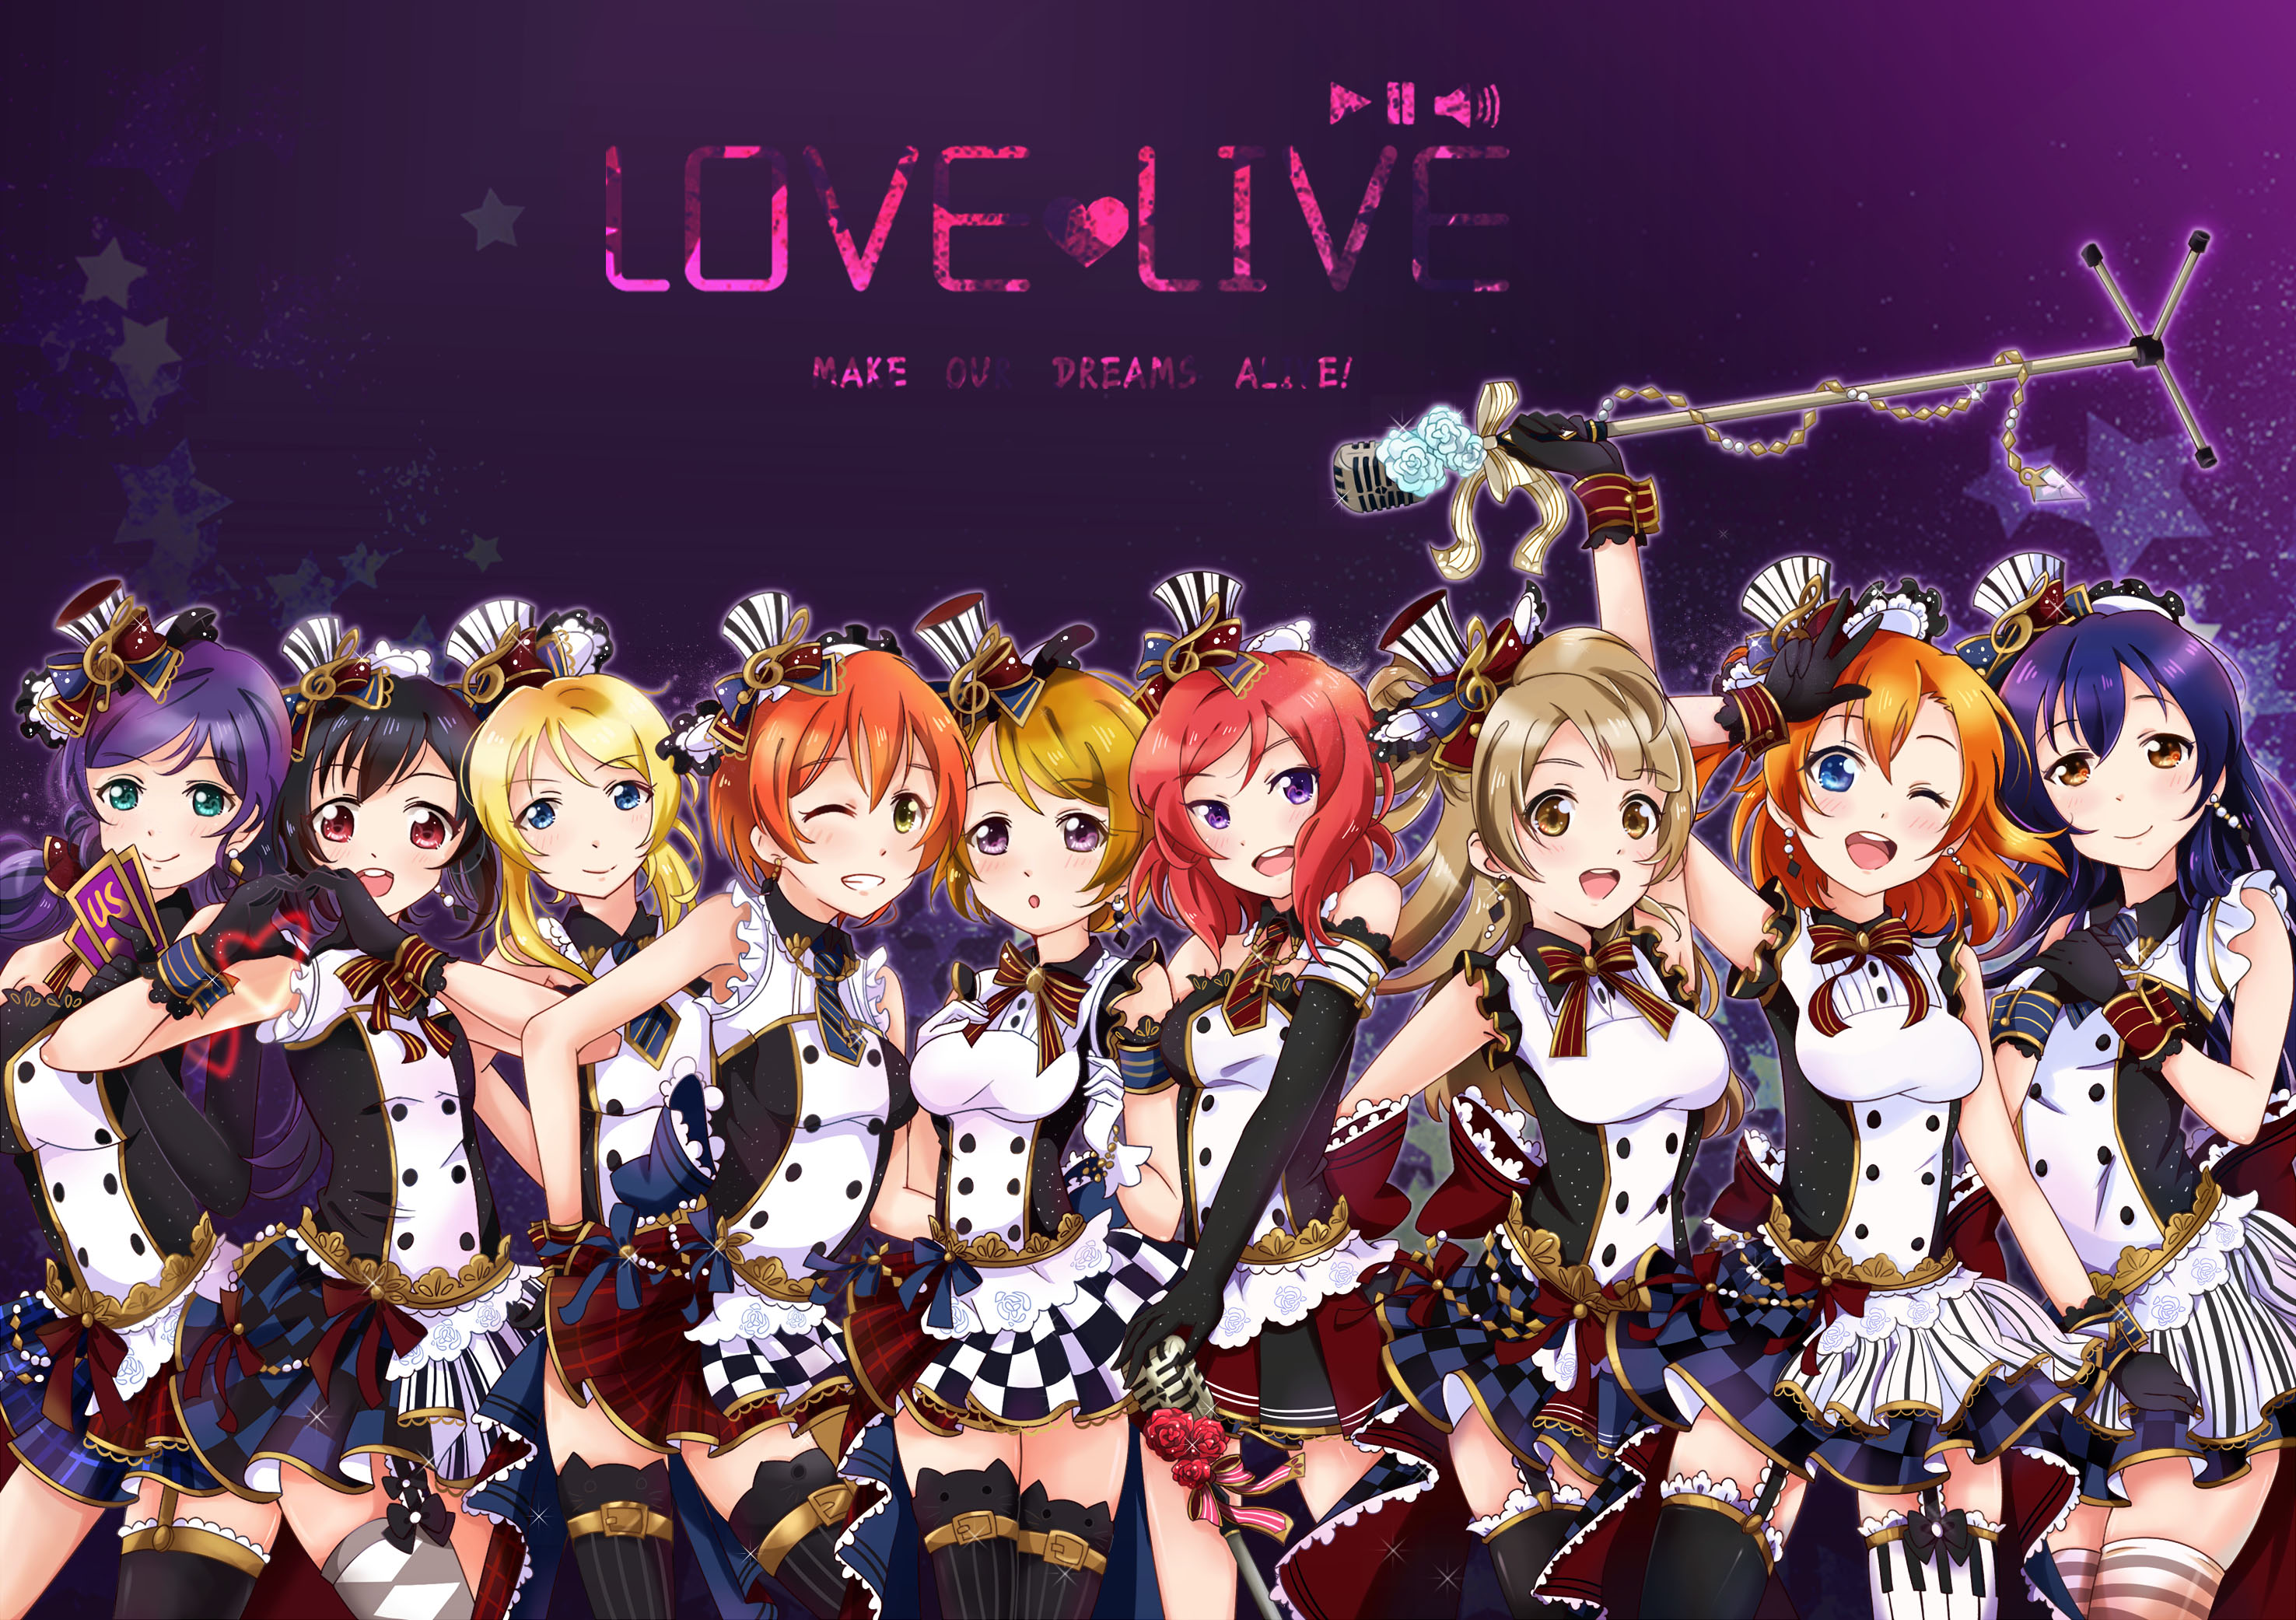 Love Live Wallpaper Hd For Pc : Love Live! Wallpaper 27 BuyninJapan BLOG